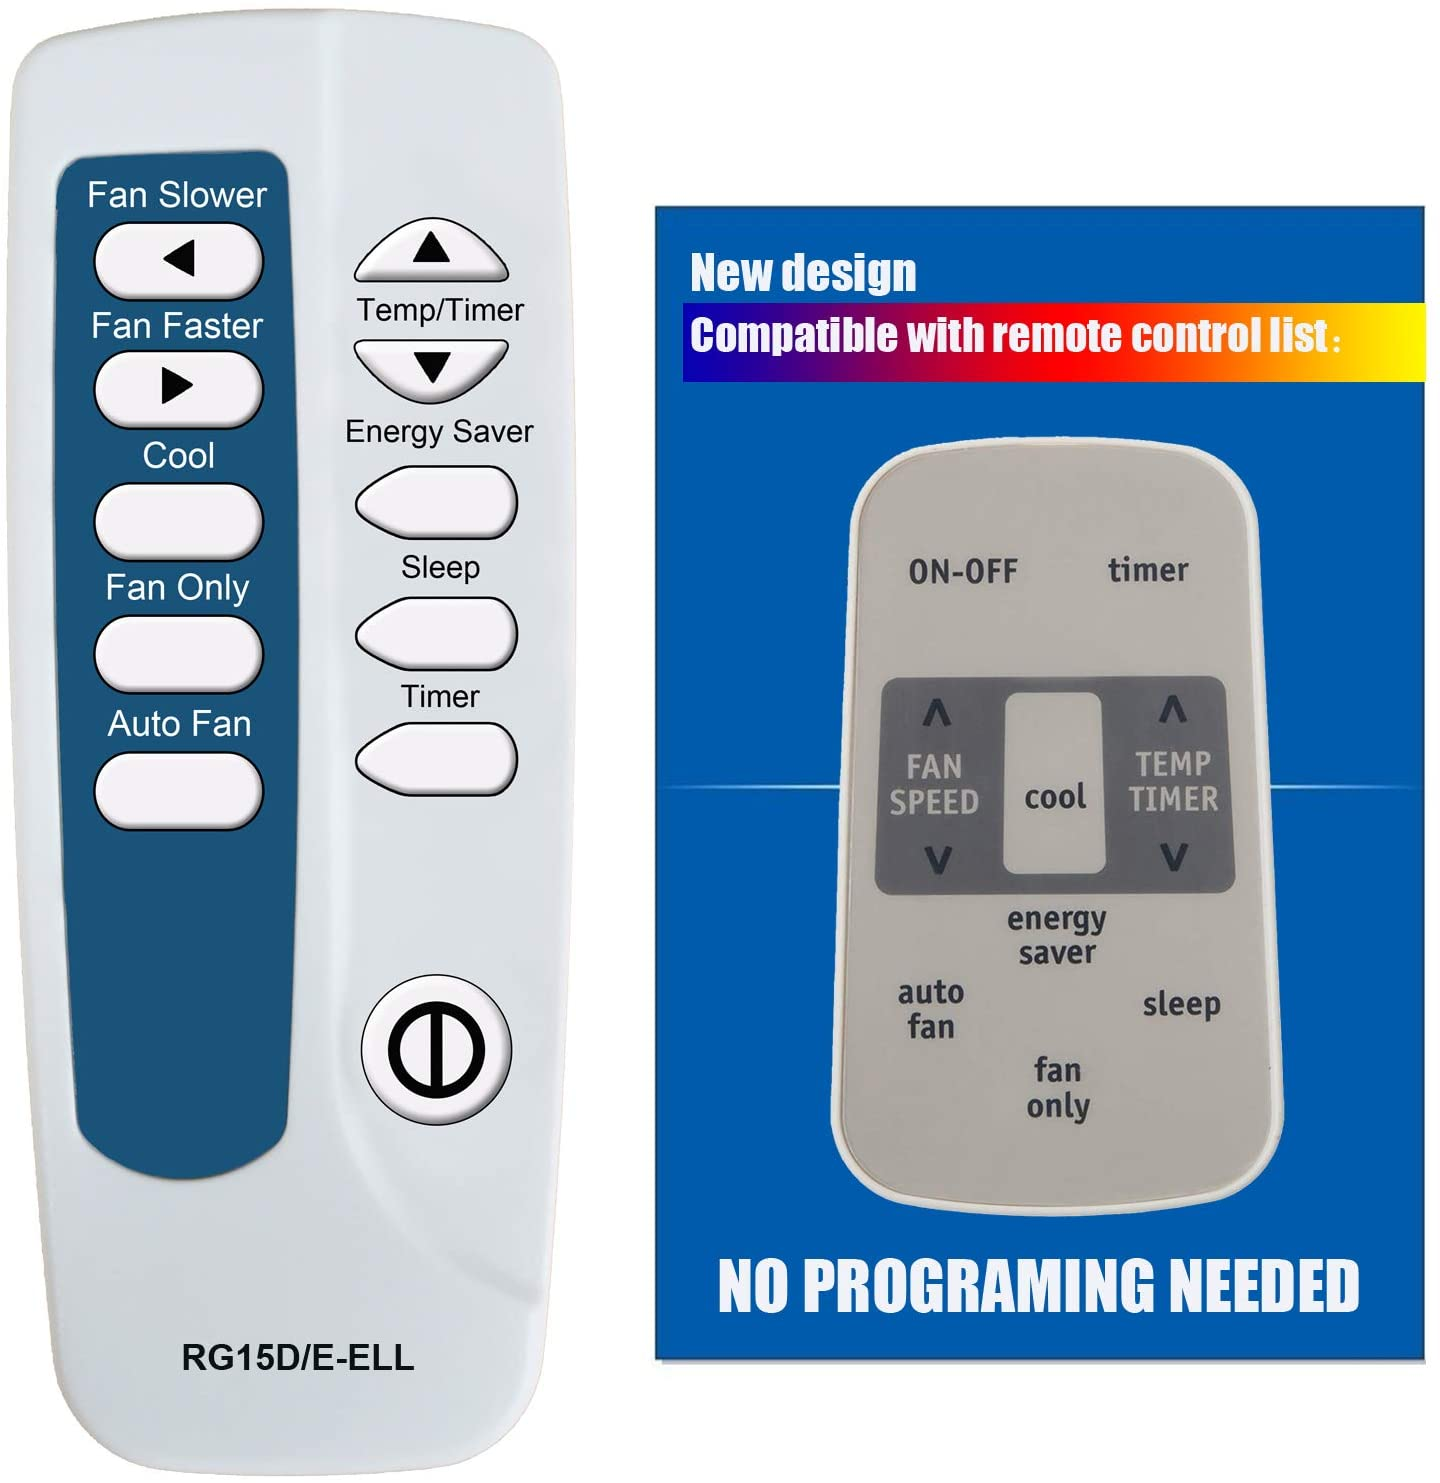 Replacement for Frigidaire Air Conditioner Remote Control Model Number RG15D/E-ELL RG15D/E-ELL1